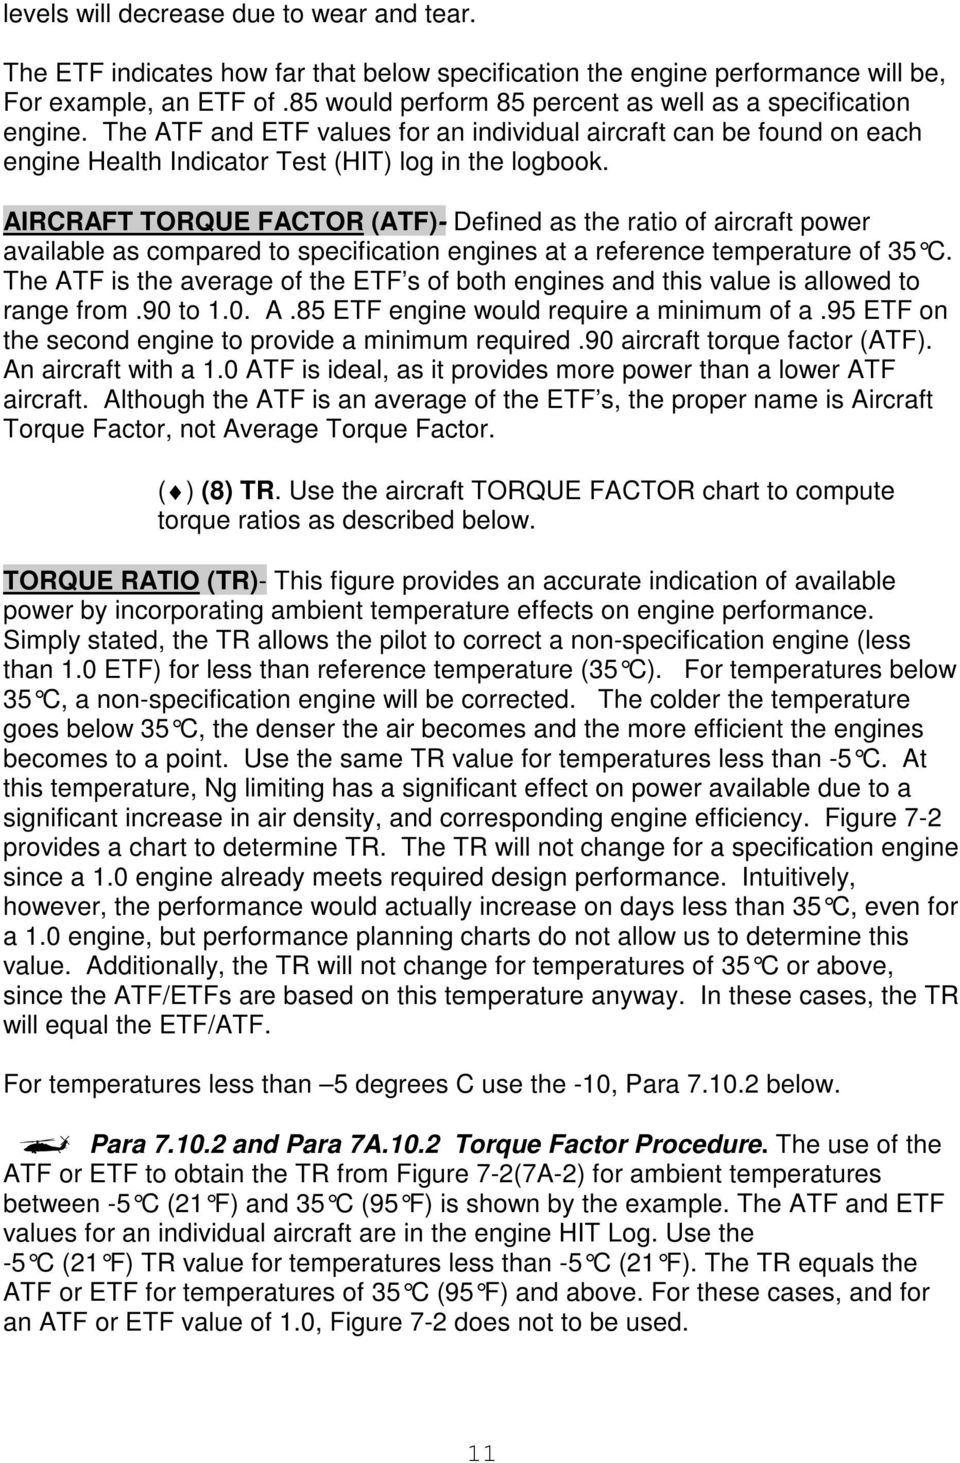 AIRCRAFT TORQUE FACTOR (ATF)- Defined as the ratio of aircraft power available as compared to specification engines at a reference temperature of 35 C.